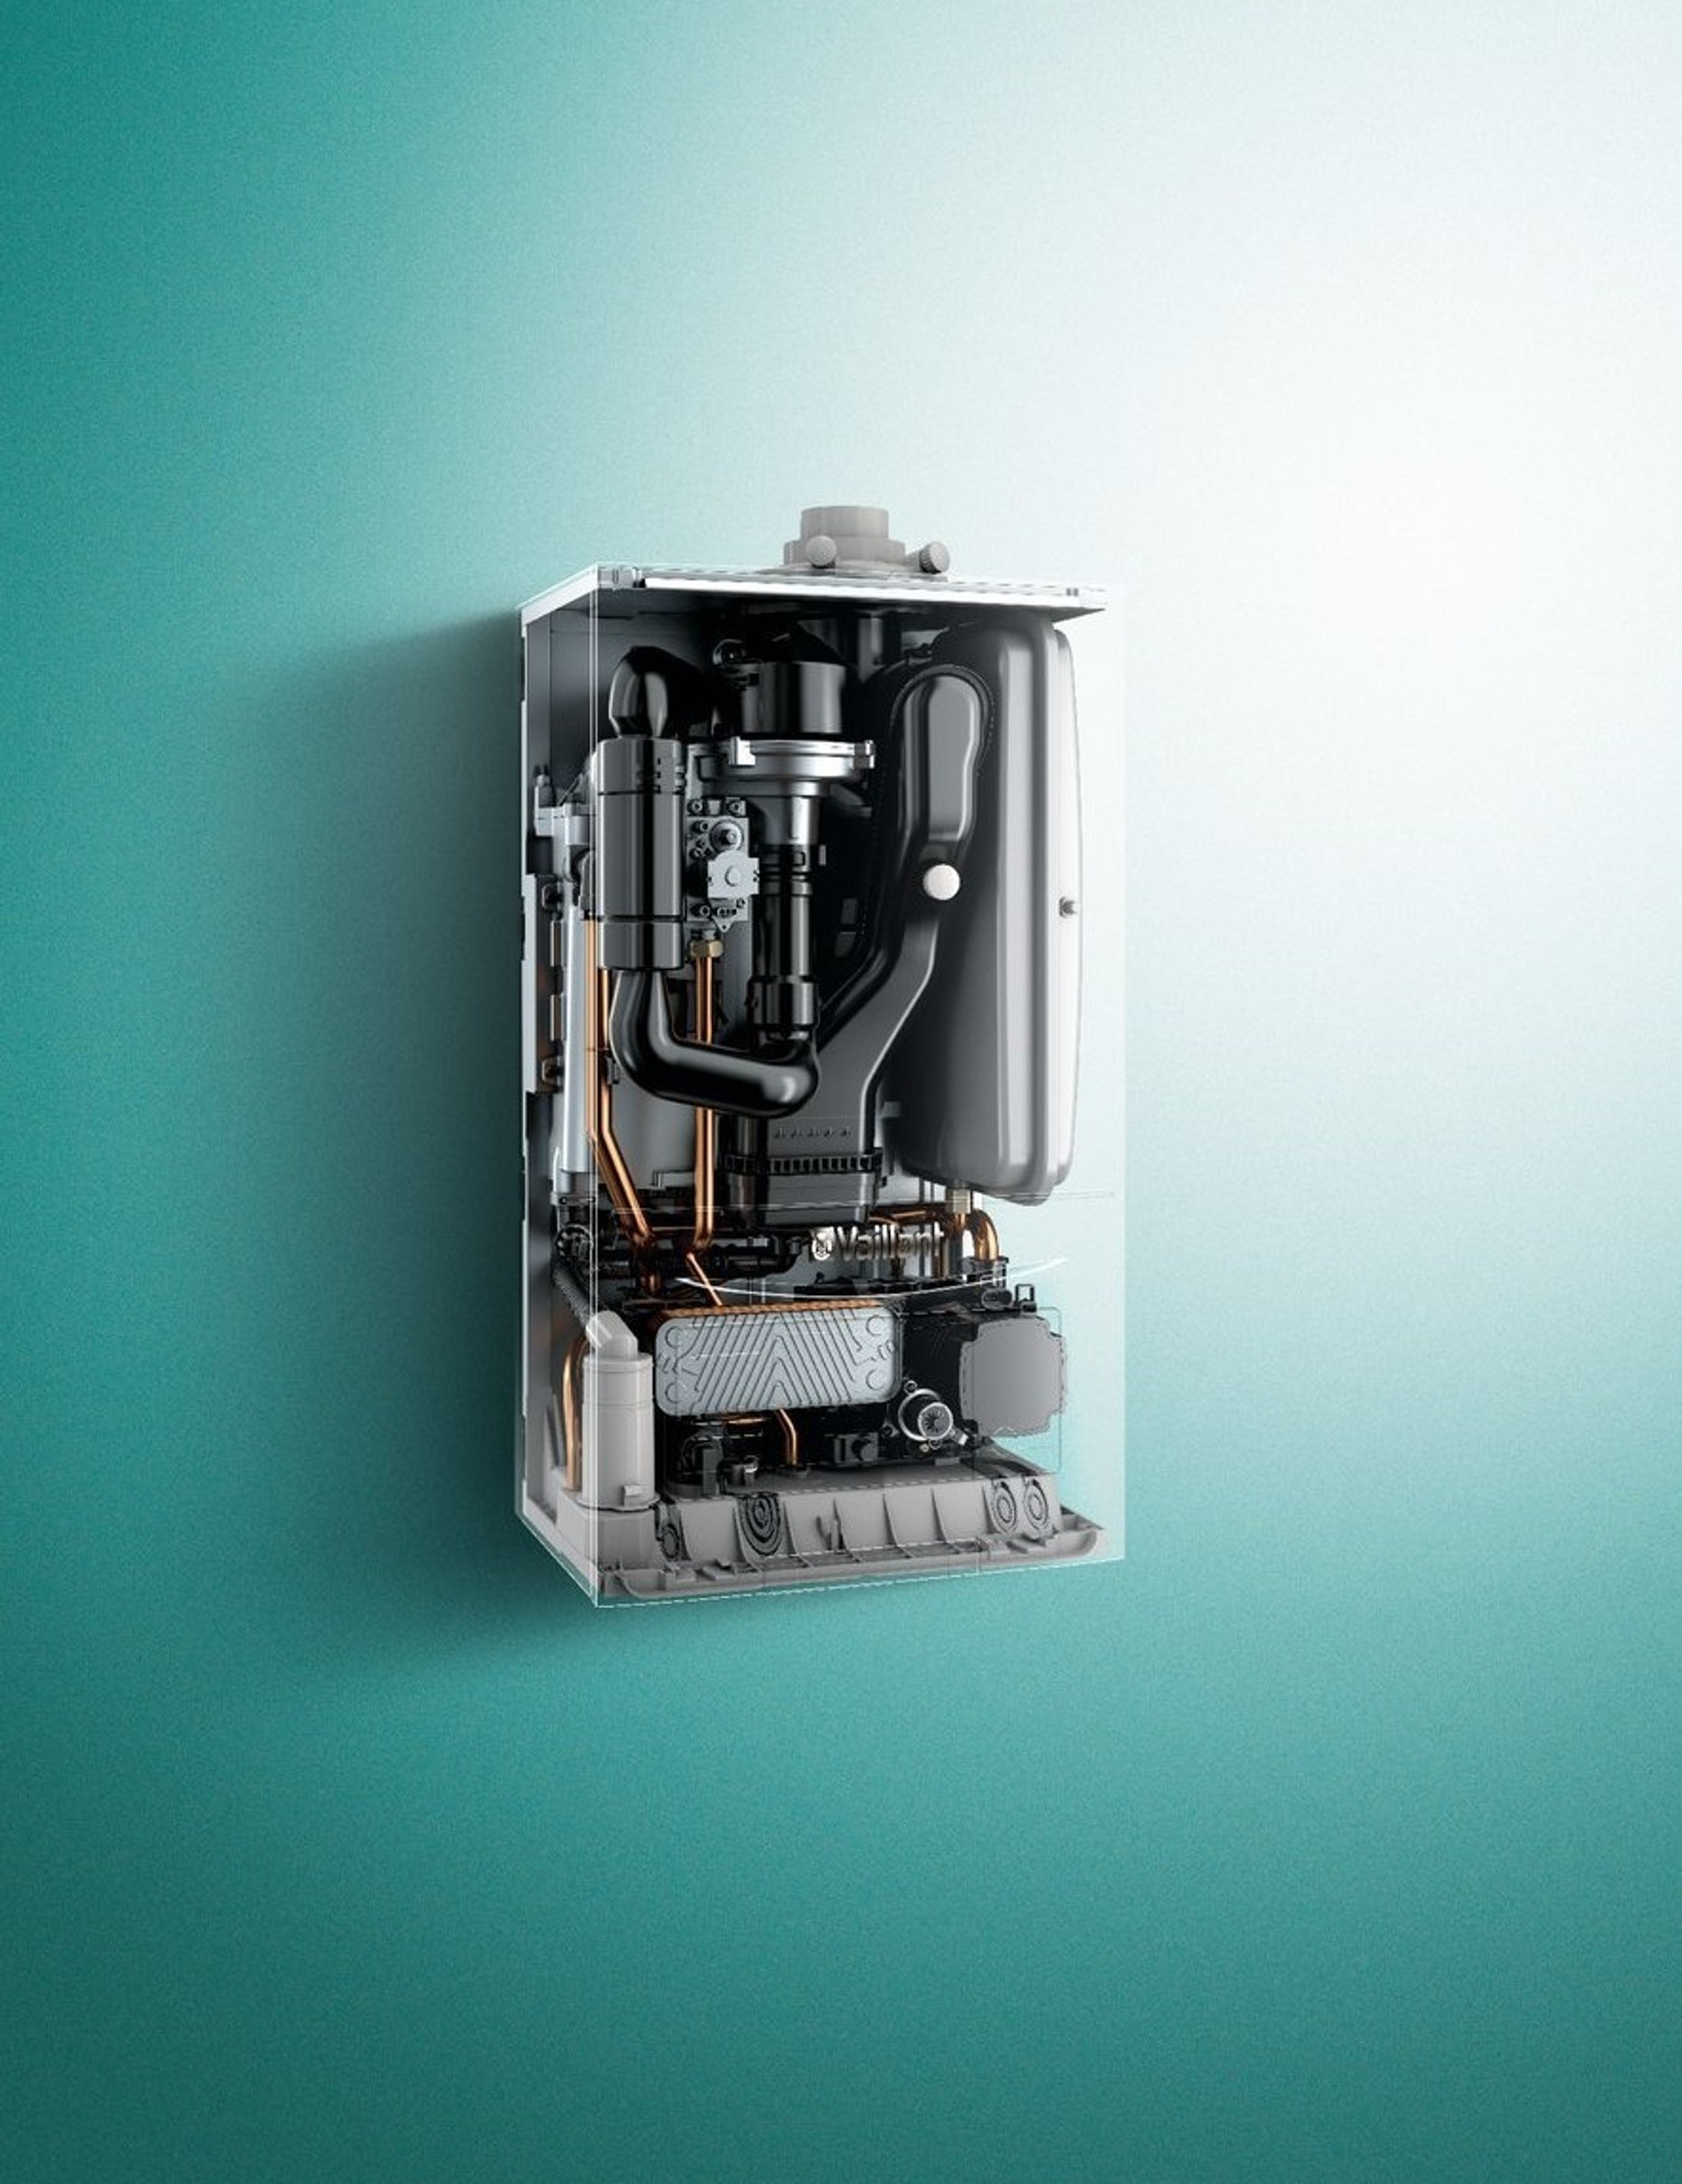 Ecofit Pure Open Vent Boiler Vaillant Uk Wiring Diagrams Y Plan Central Heating 412 415 418 425 430 And 435 Outputs